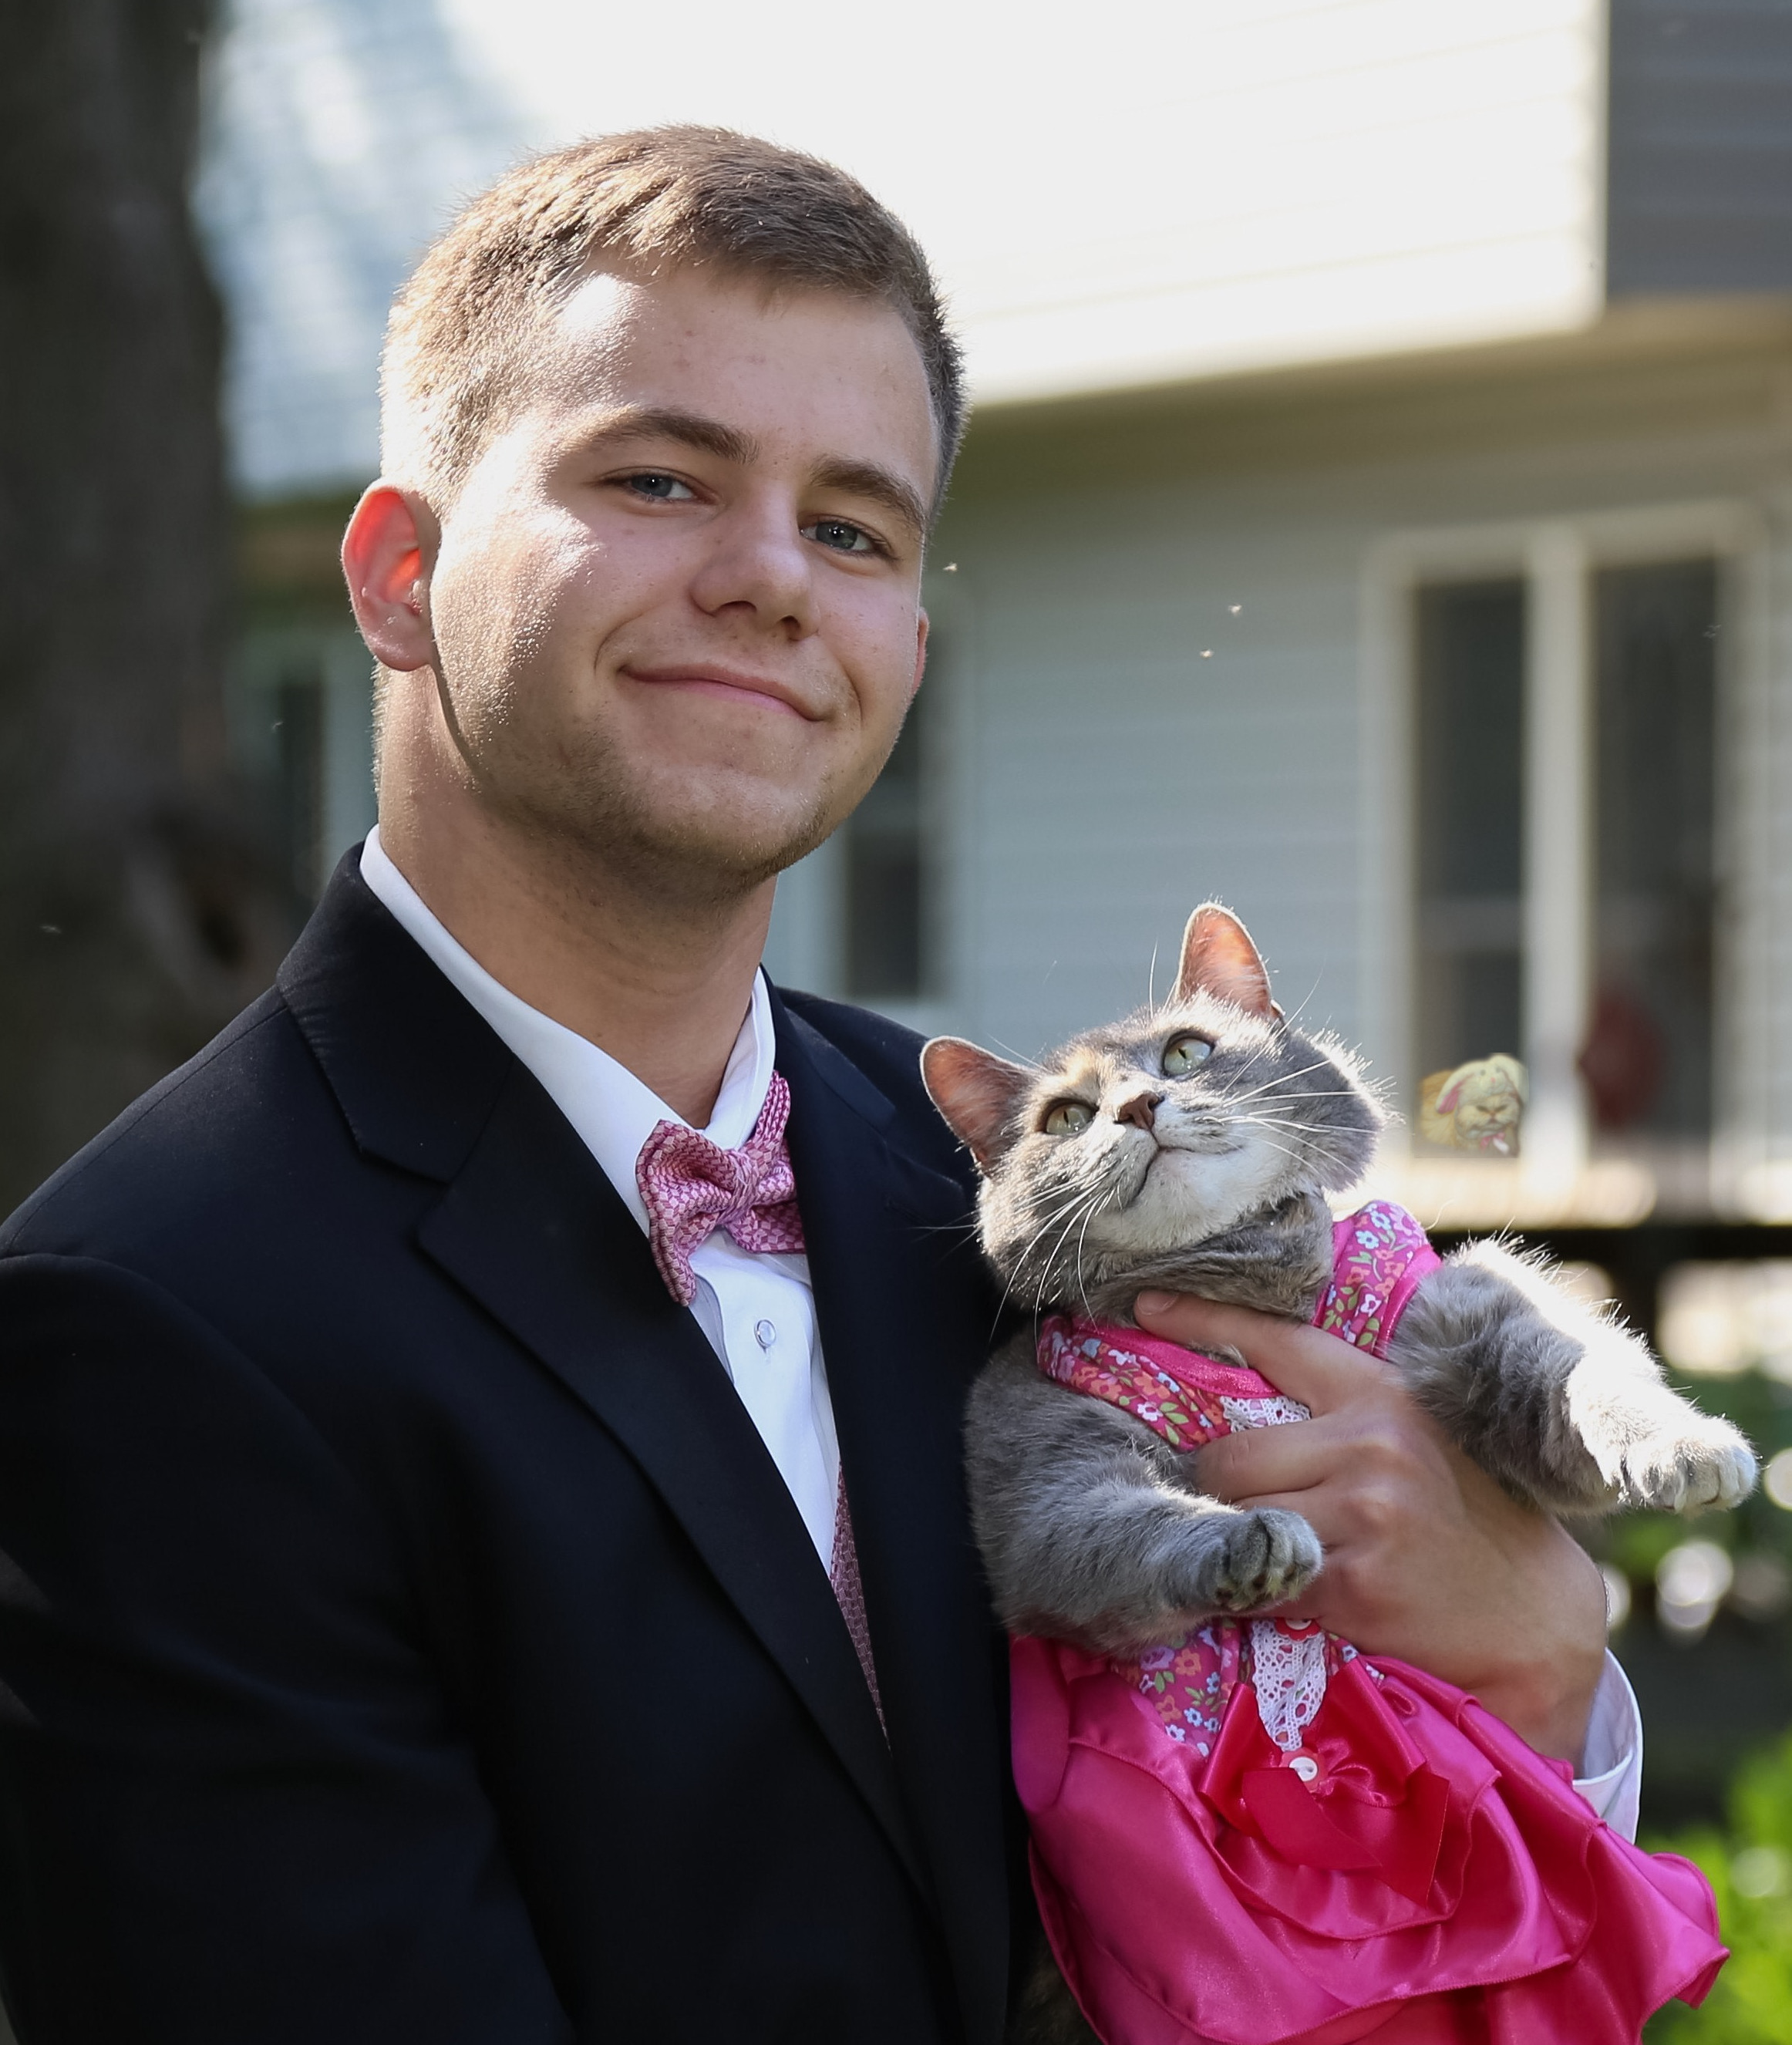 Guy takes his cat to prom